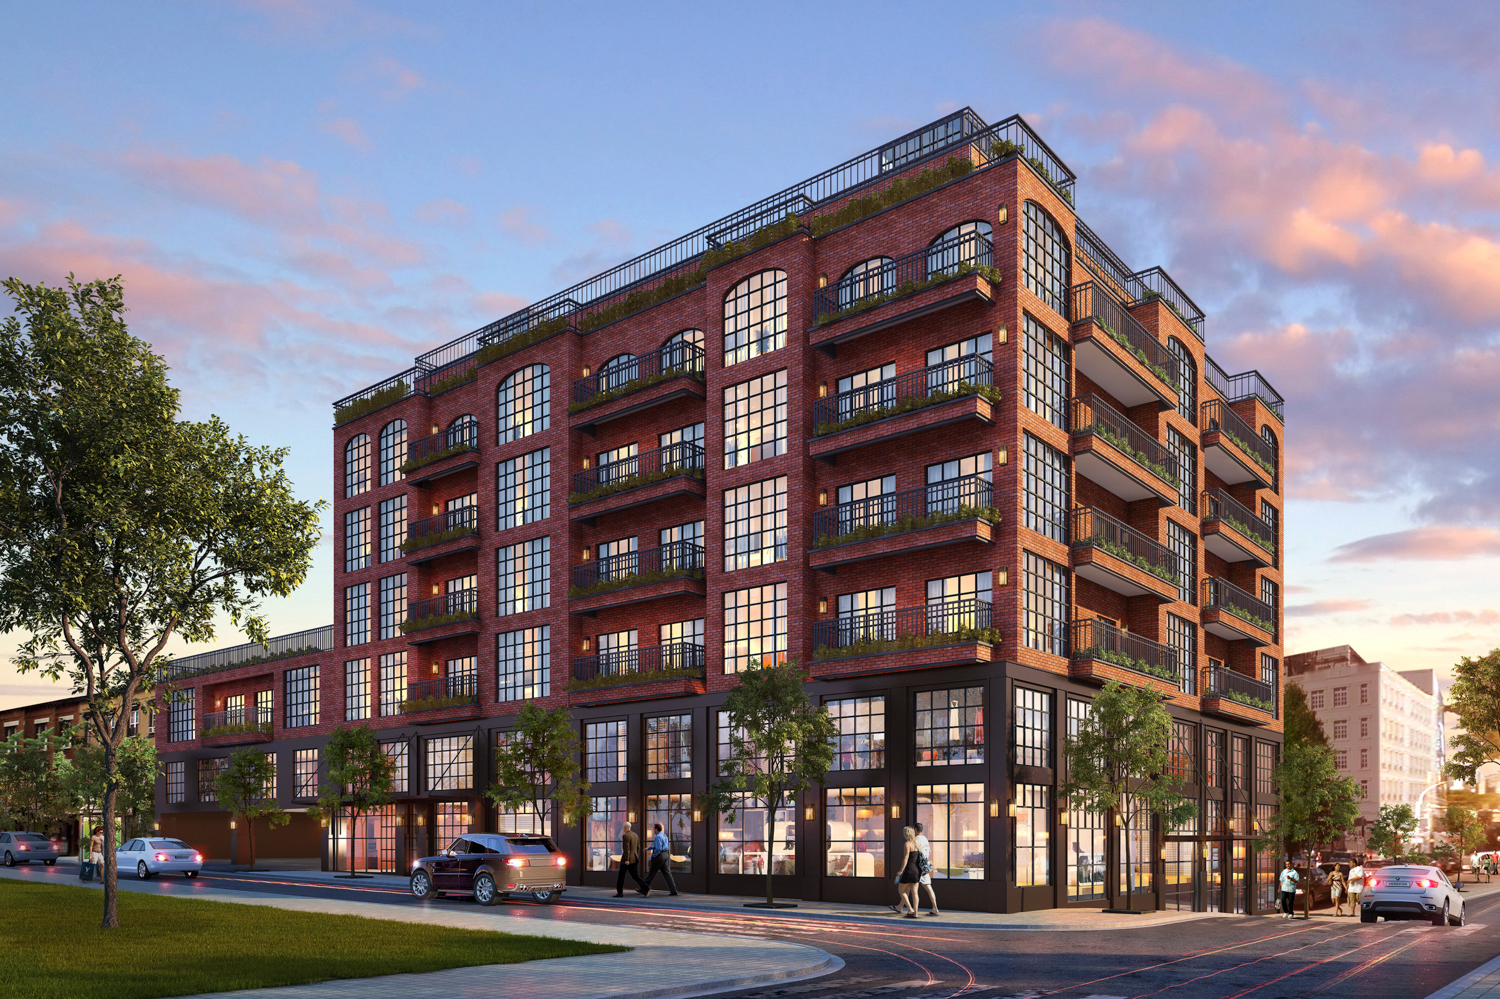 D.A. Development Group Reveals The Smyth in Long Island City, Queens